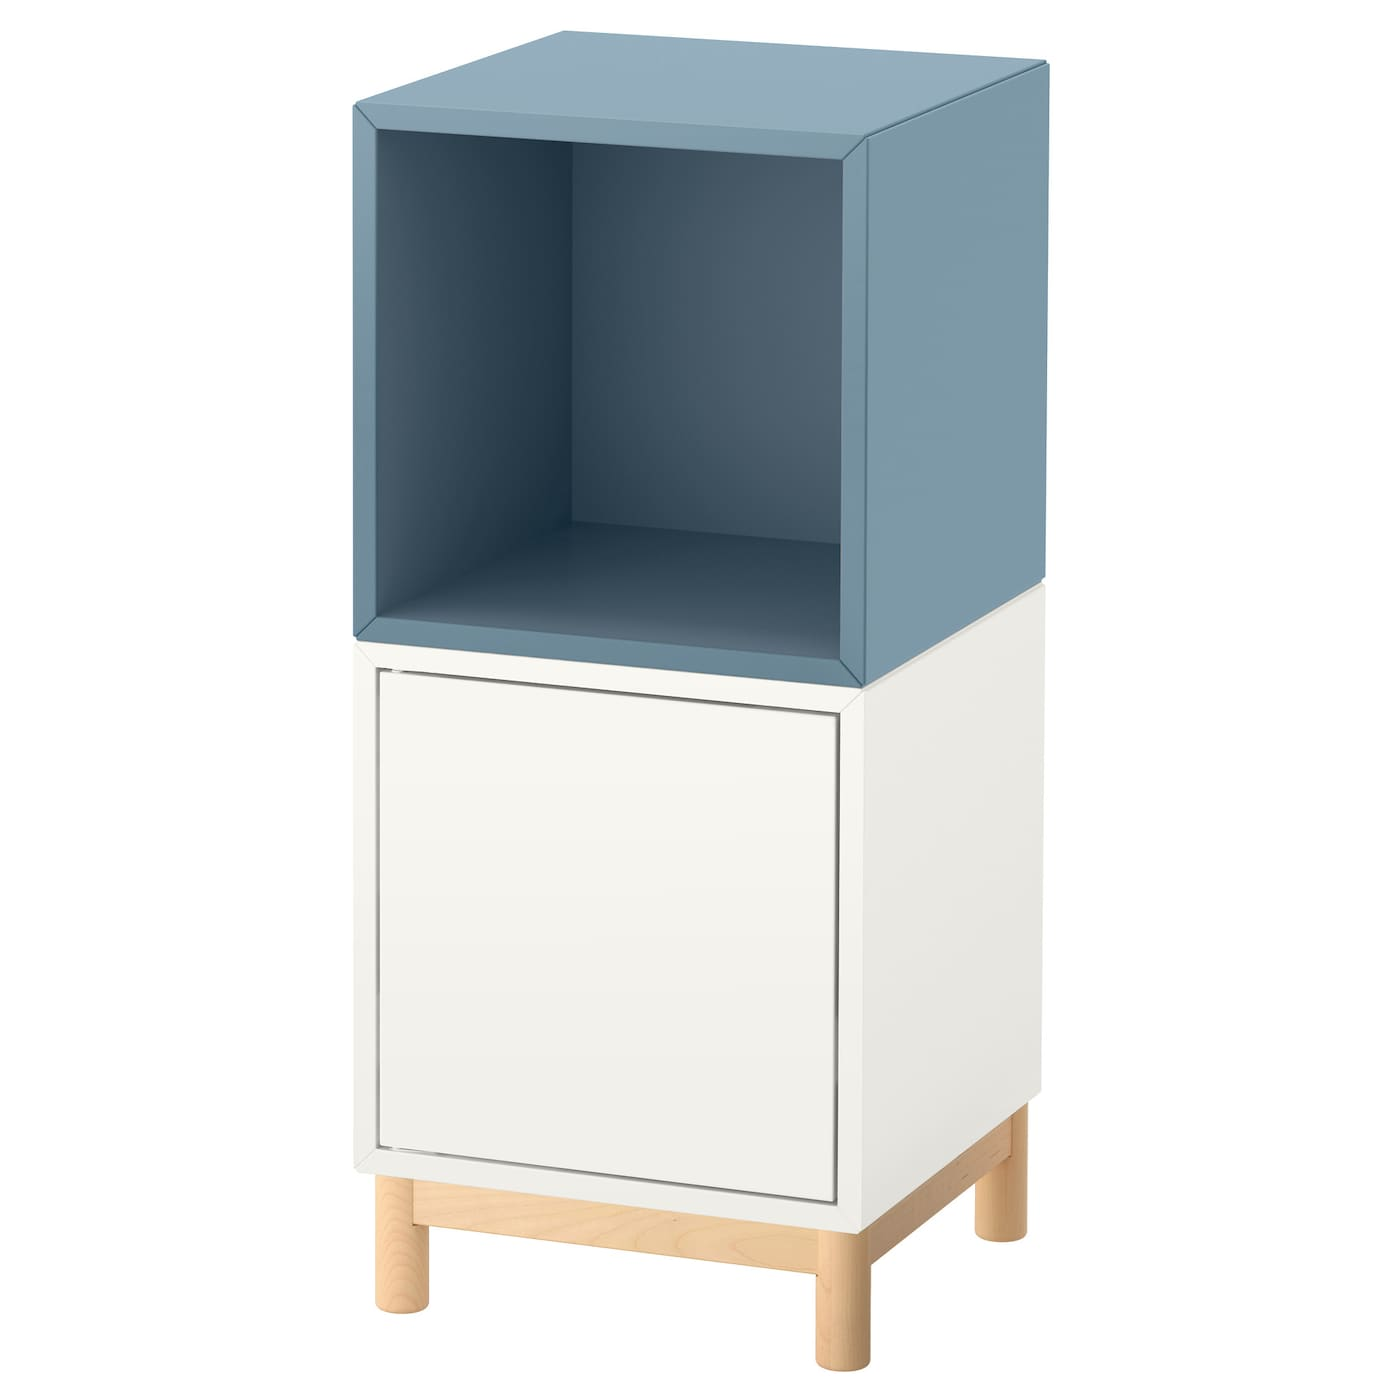 Soup Kitchens In Long Island Ikea Blue Cabinet 28 Images Lixhult Cabinet Metal